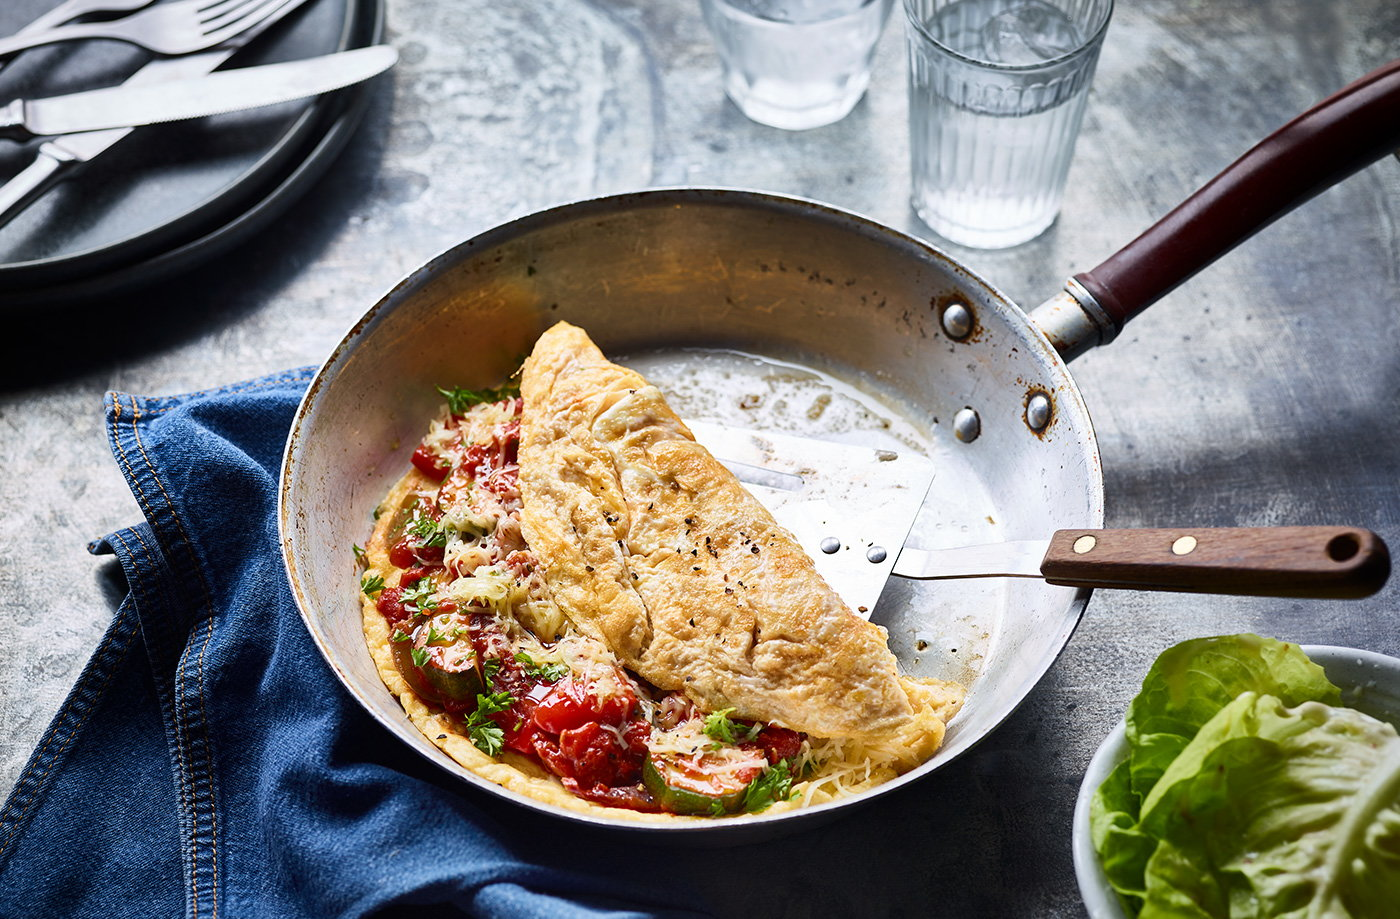 Ratatouille omelette recipe